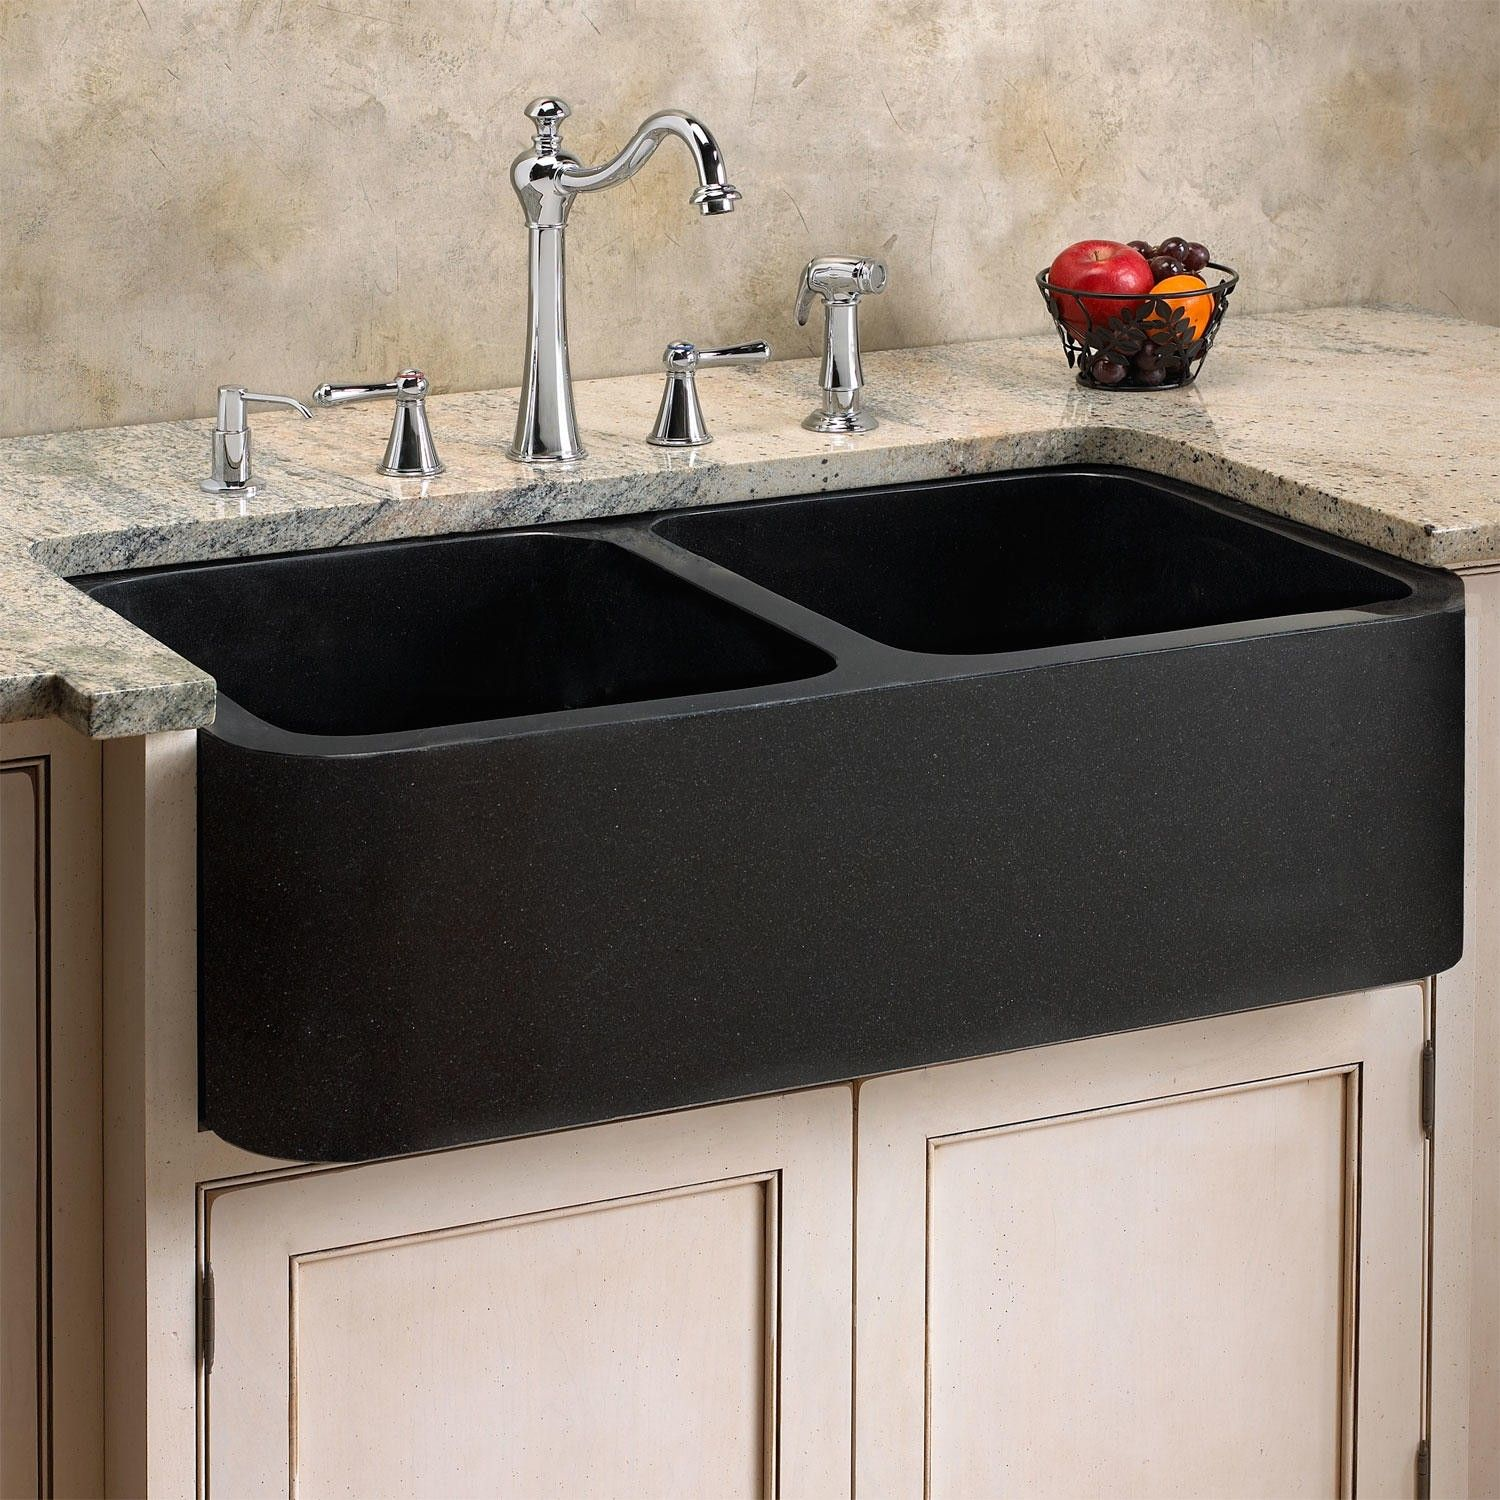 Polished Granite DoubleBowl Farmhouse Sink This would be